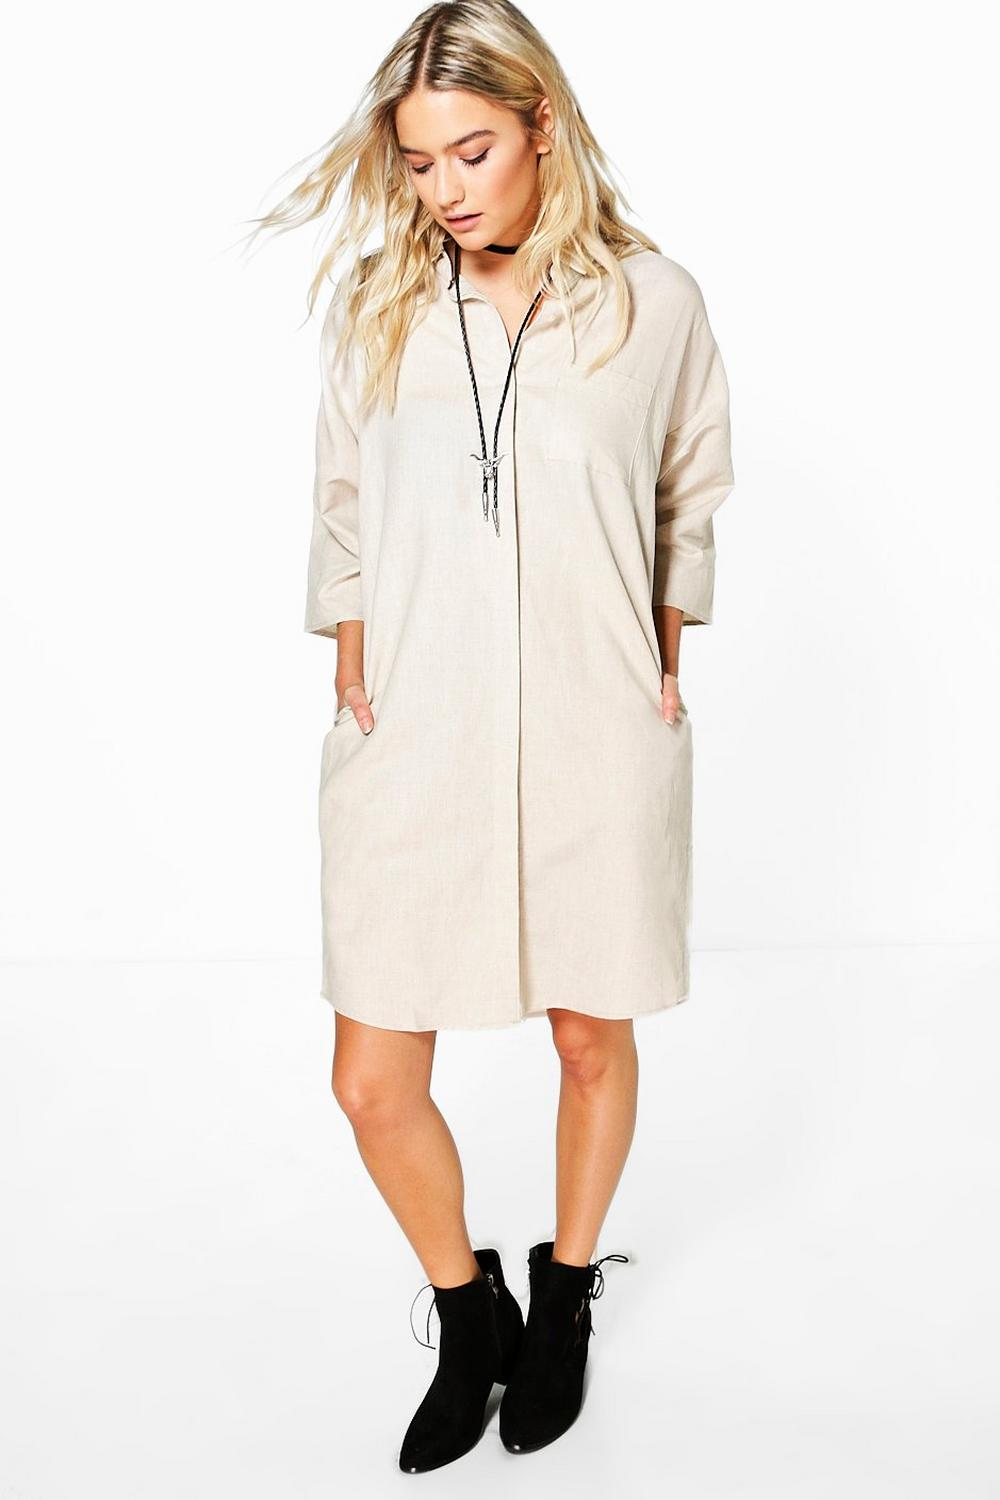 Rose Short Sleeved Oversized Shirt Dress